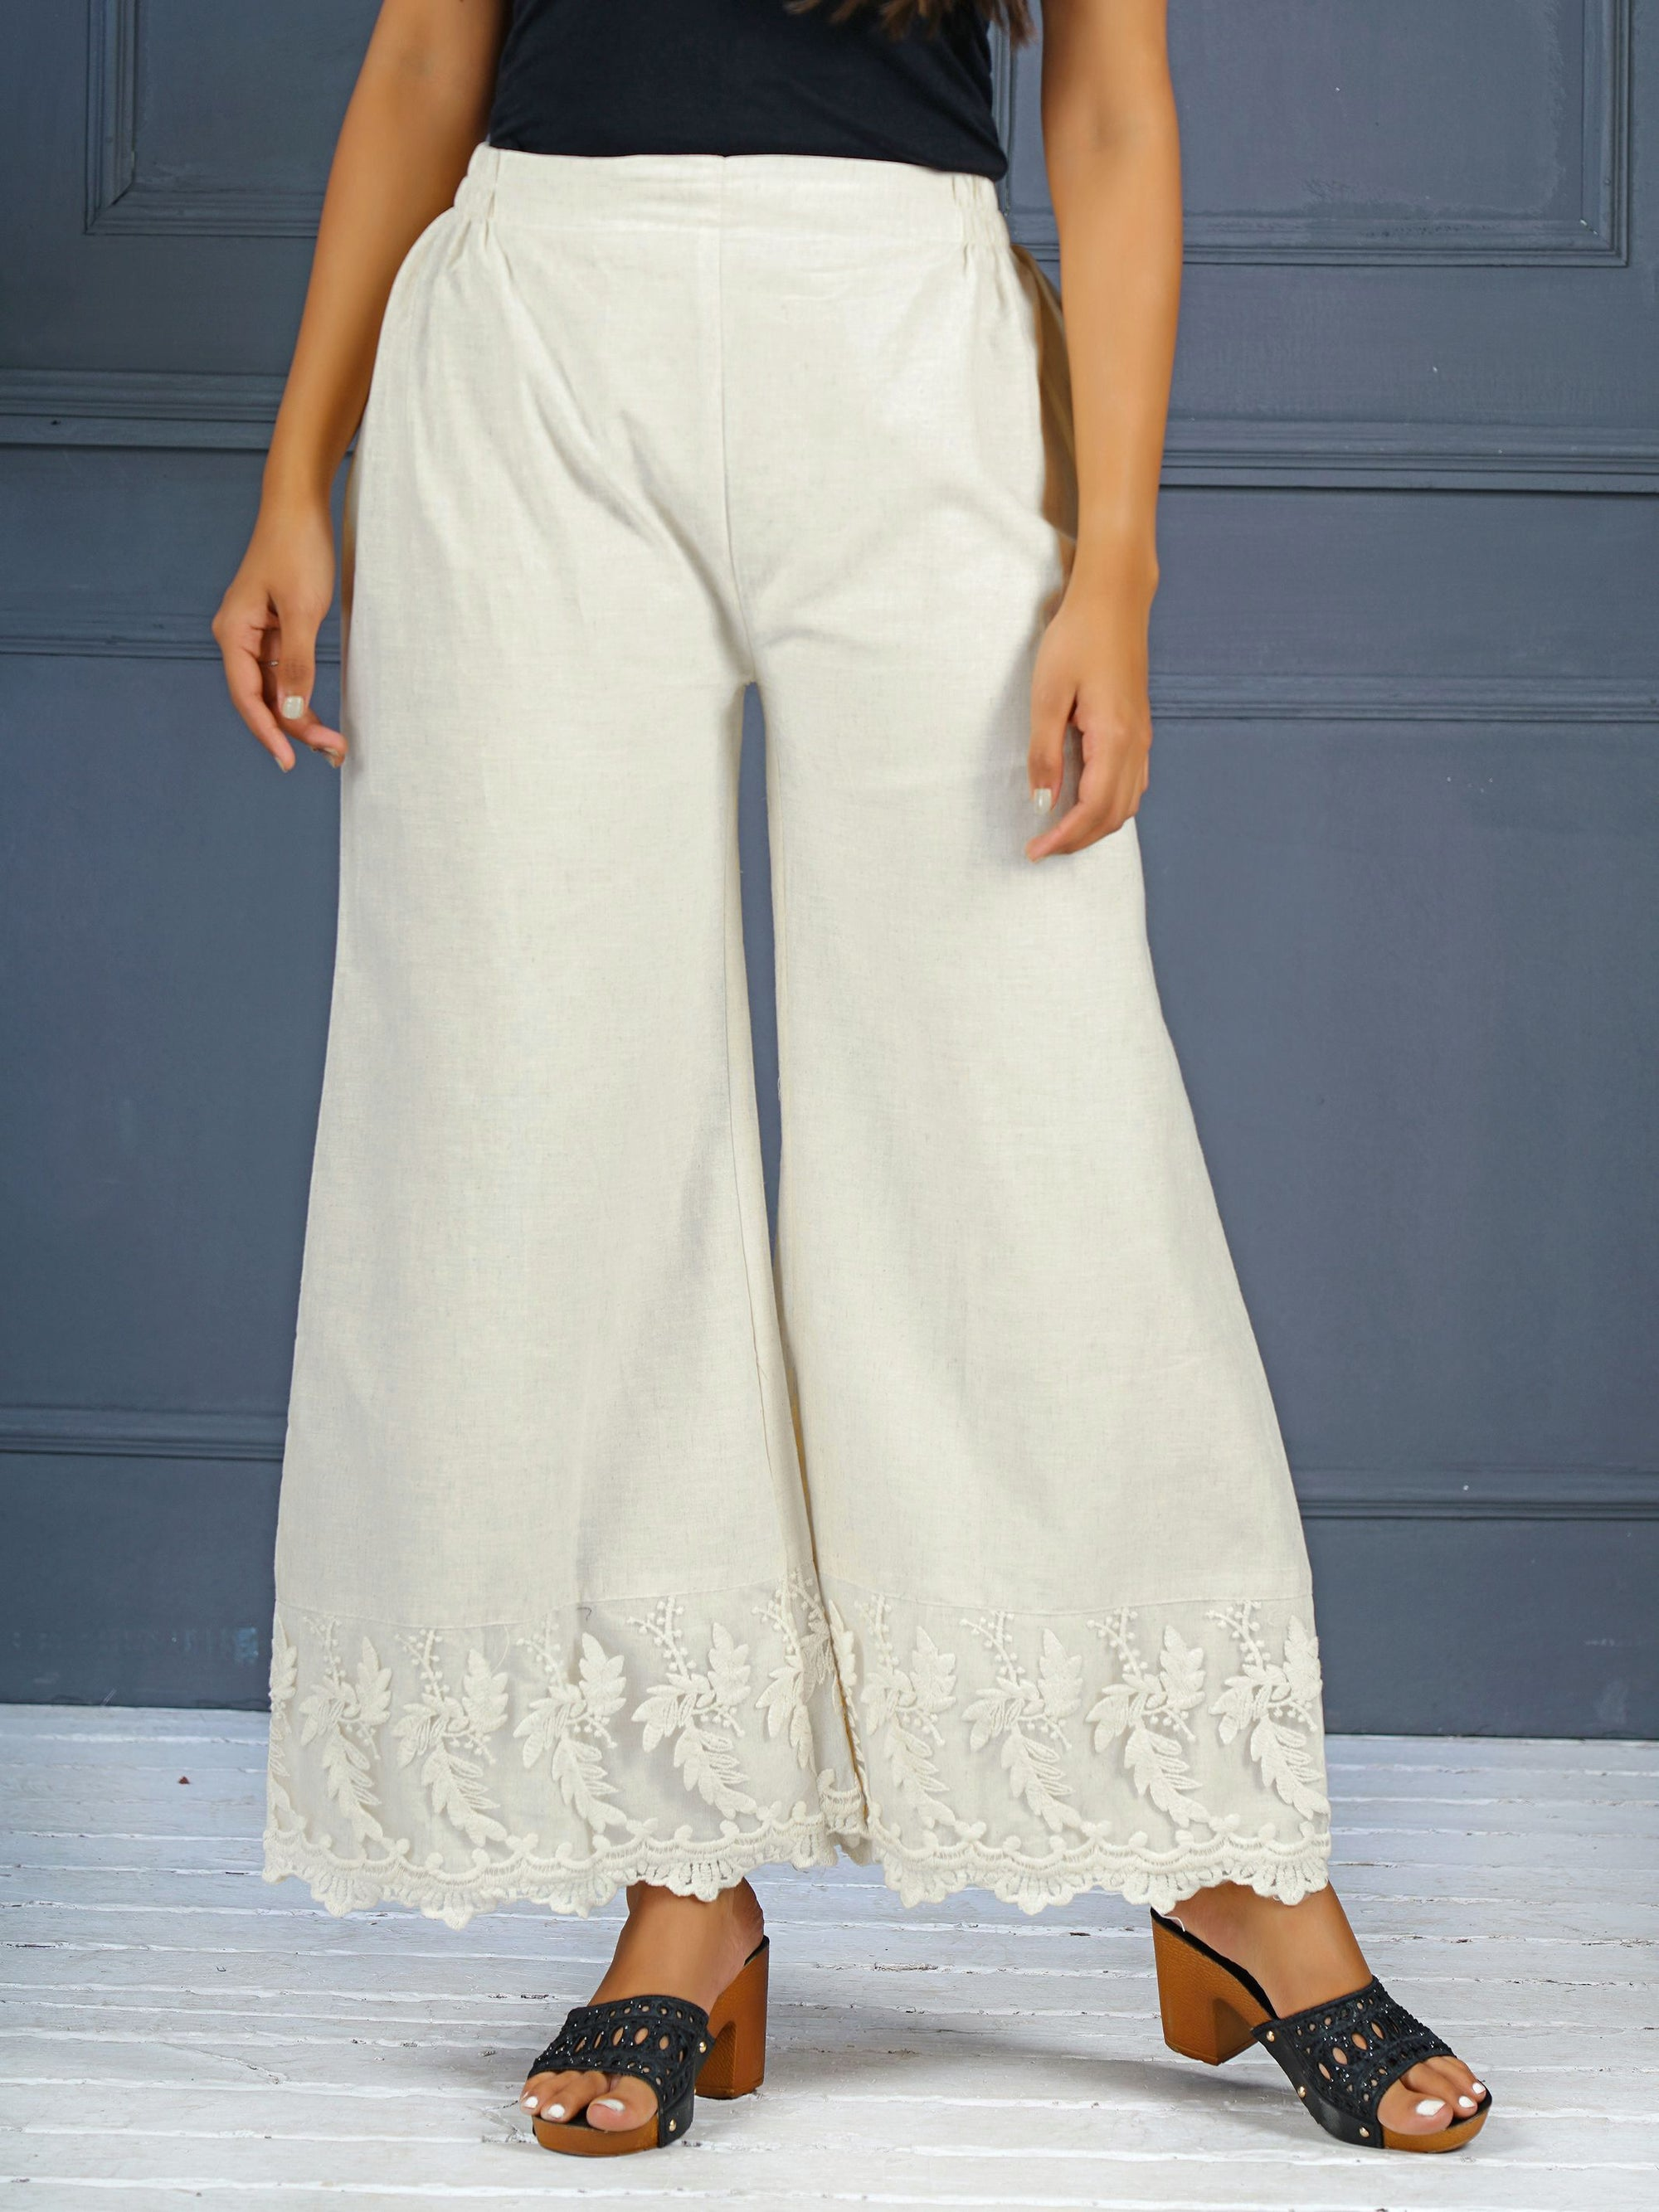 Off-White Flared Palazzo With Lace Embroidery And Lace Cutout